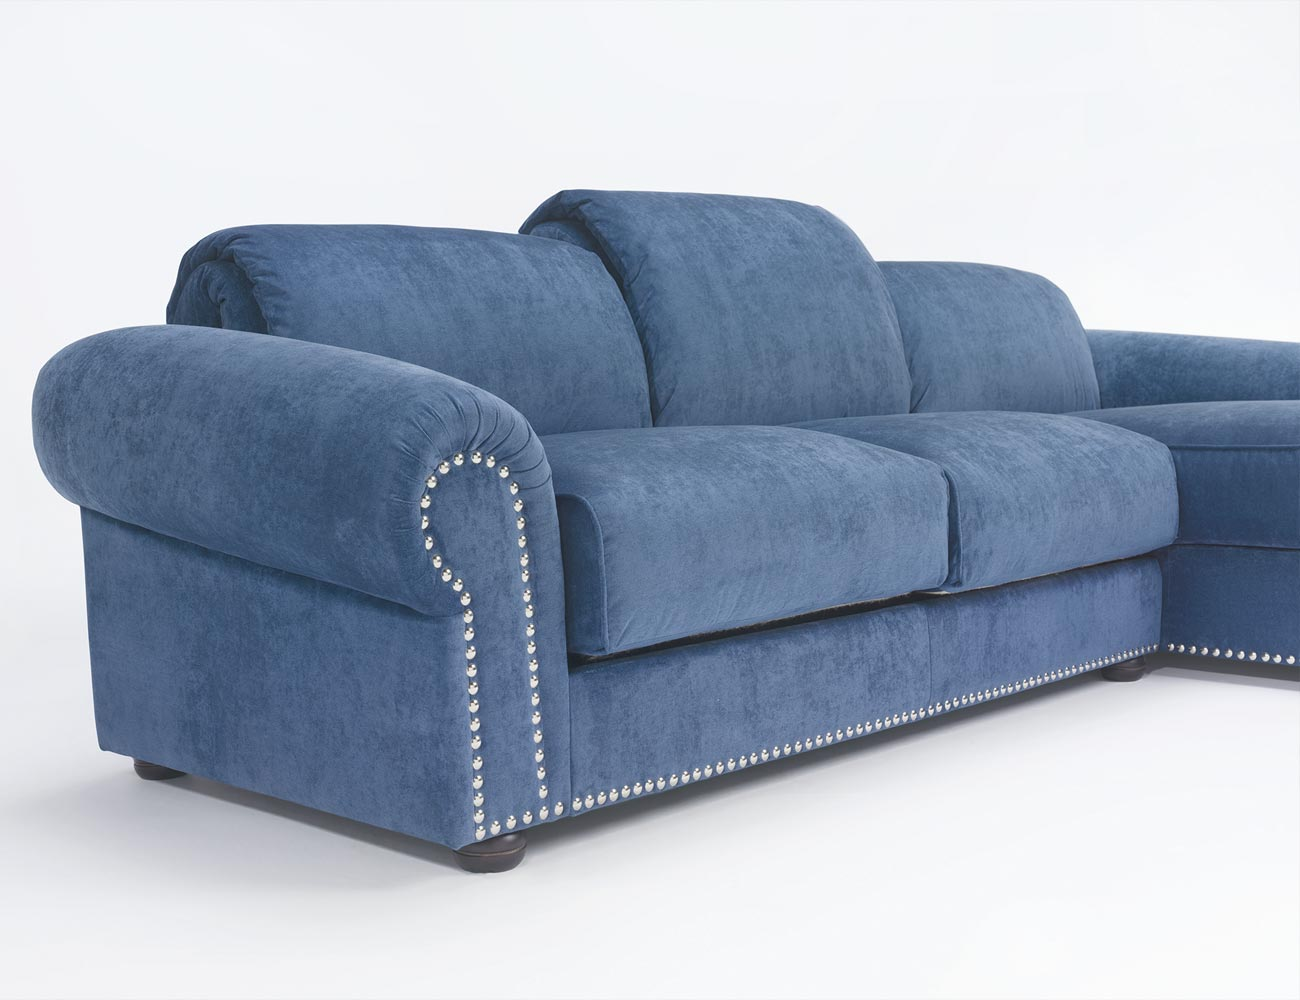 Sofa chaiselongue gran lujo decorativo azul 116